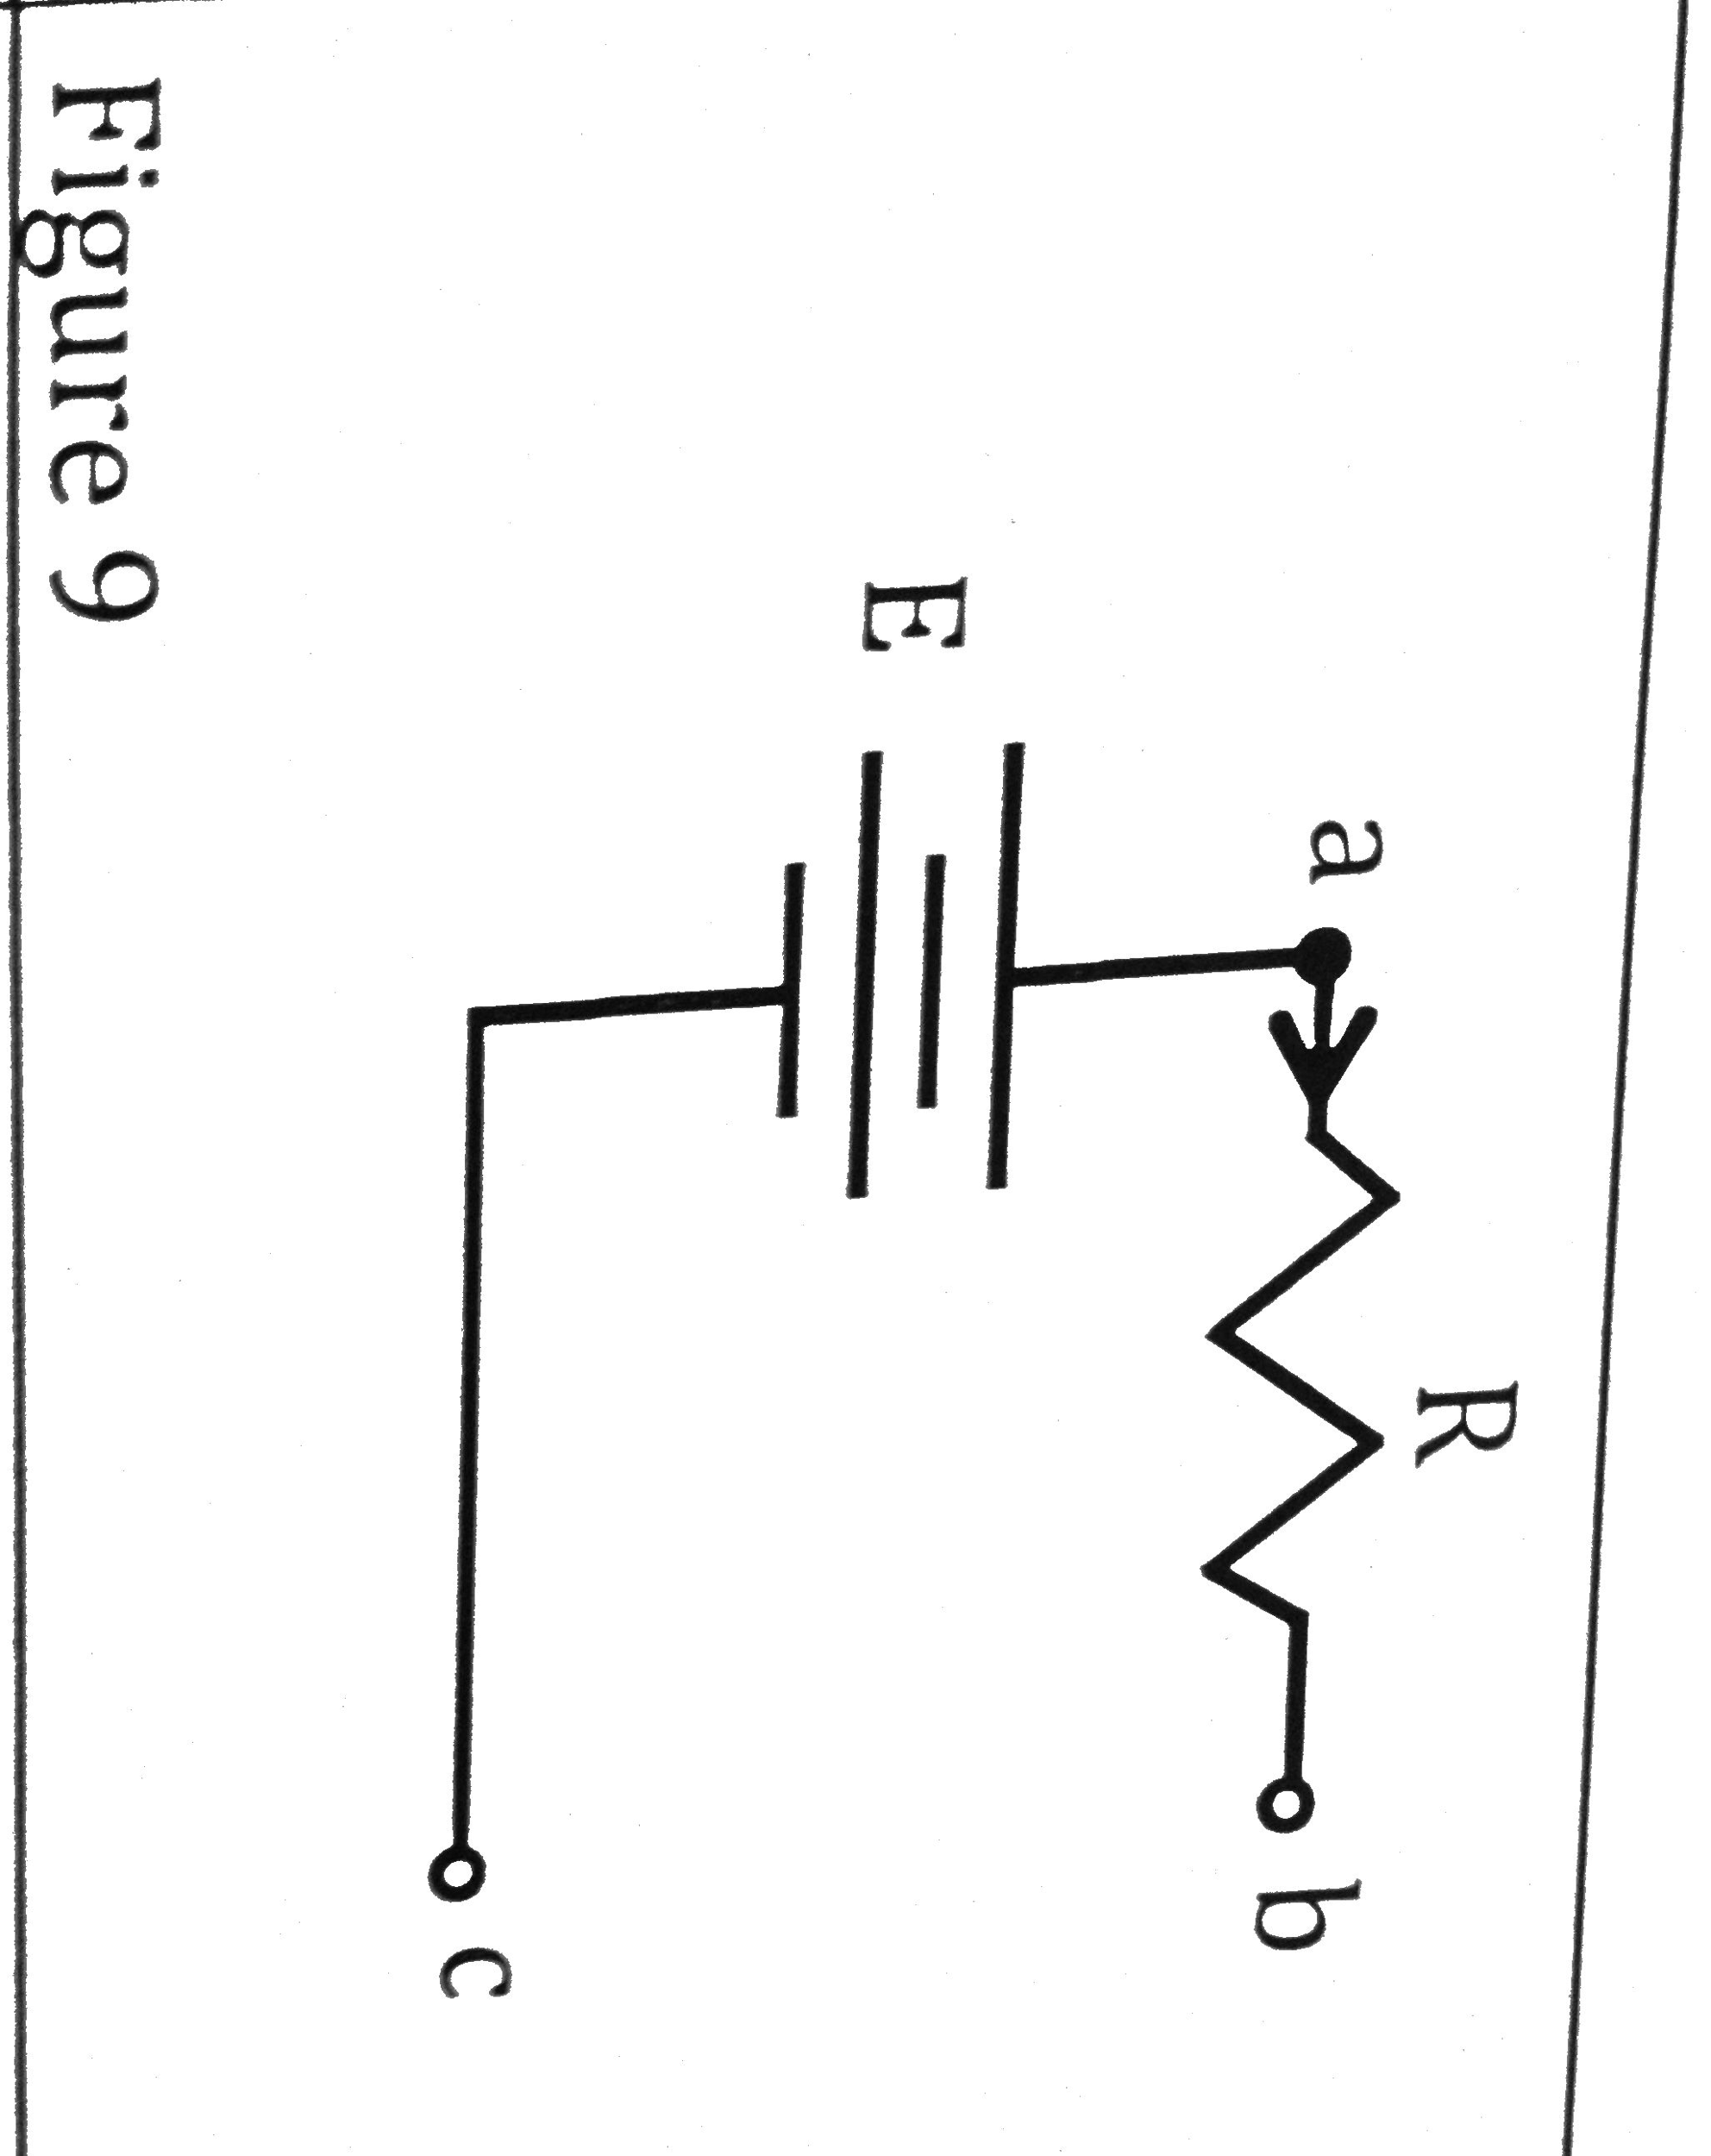 Figure 9 depicts a Thevinen's equivalent battery.